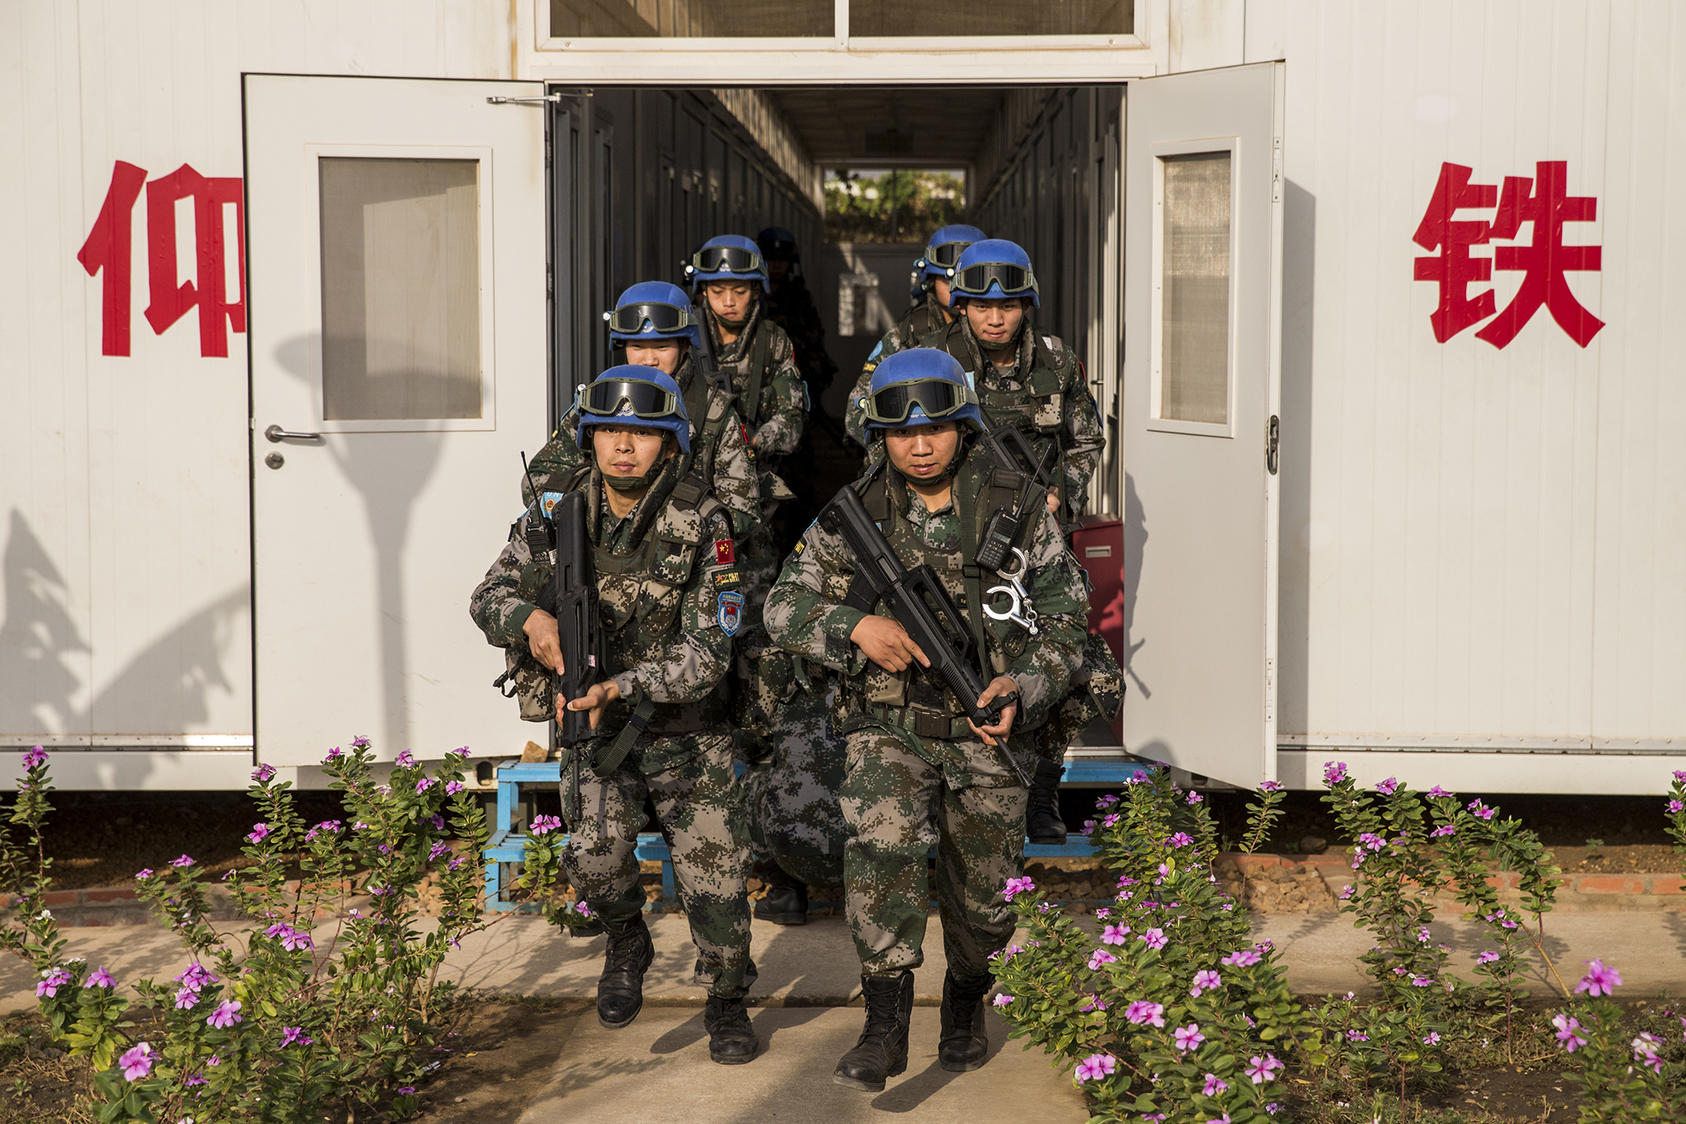 UNMISS Chinese Battalion Patrols Perimeter of UN House and POC Sites in Juba